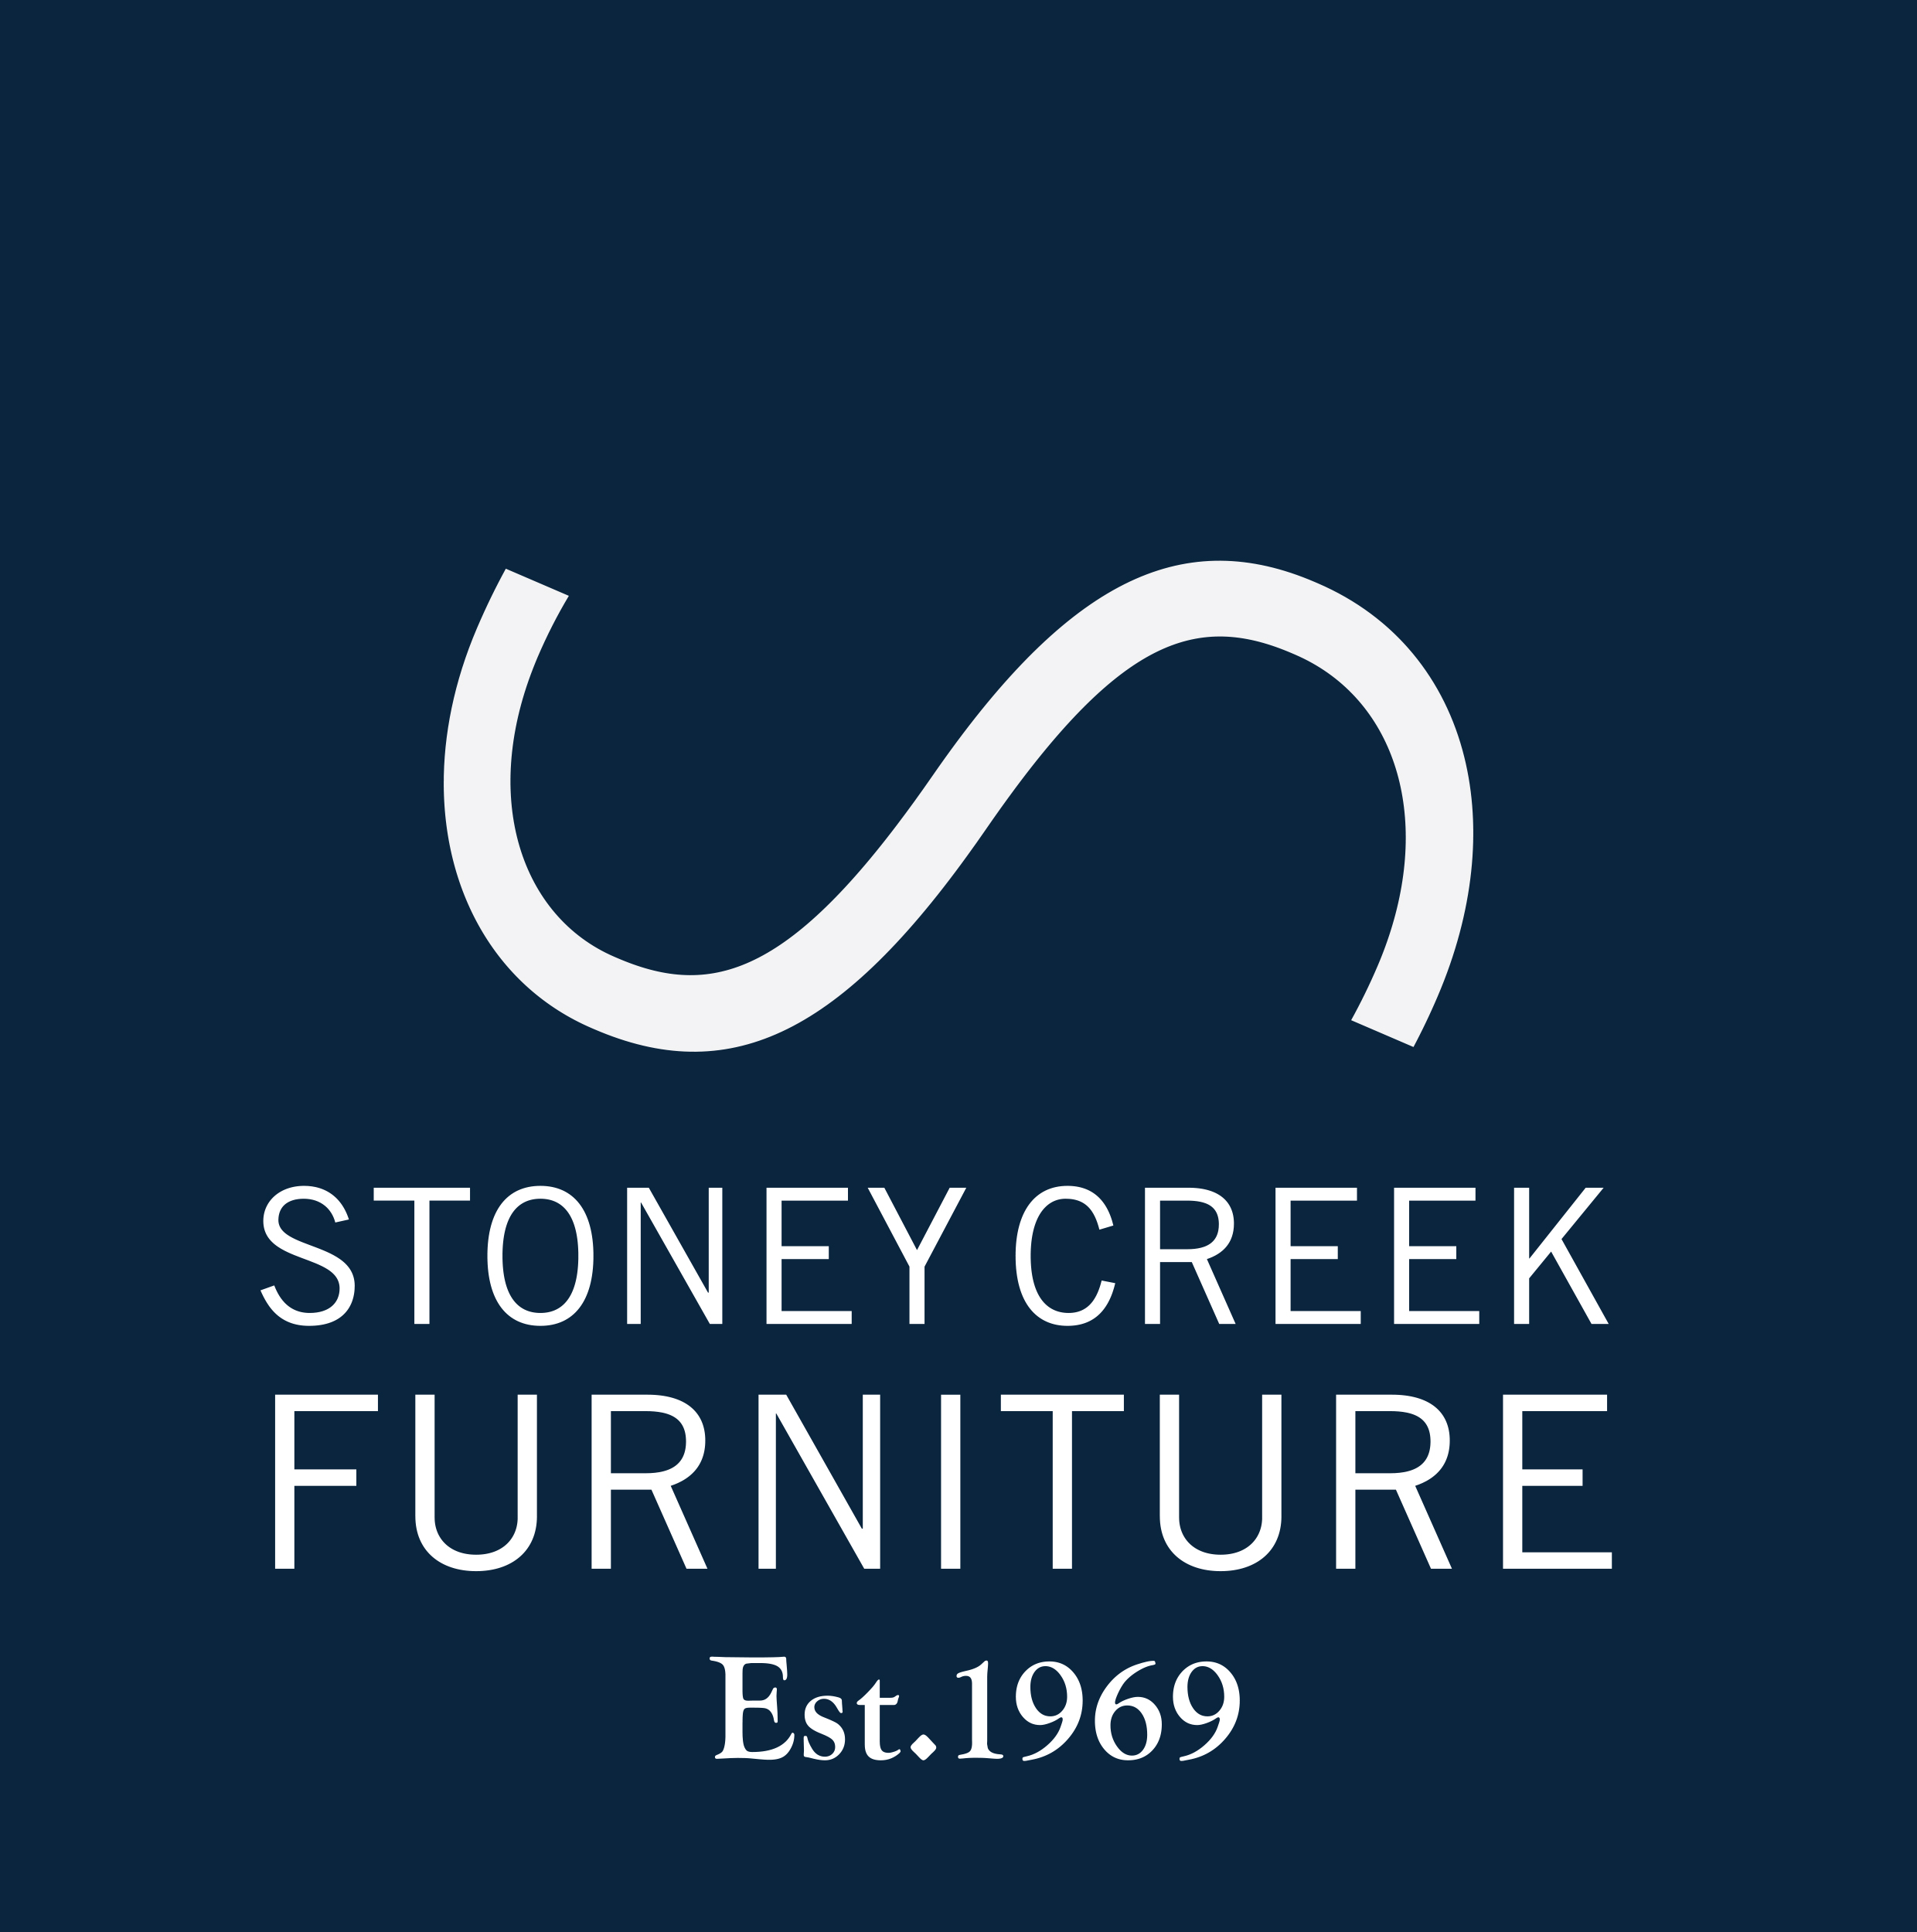 Stoney Creek Furniture Blog Your Ideas Your Style Design Inspired